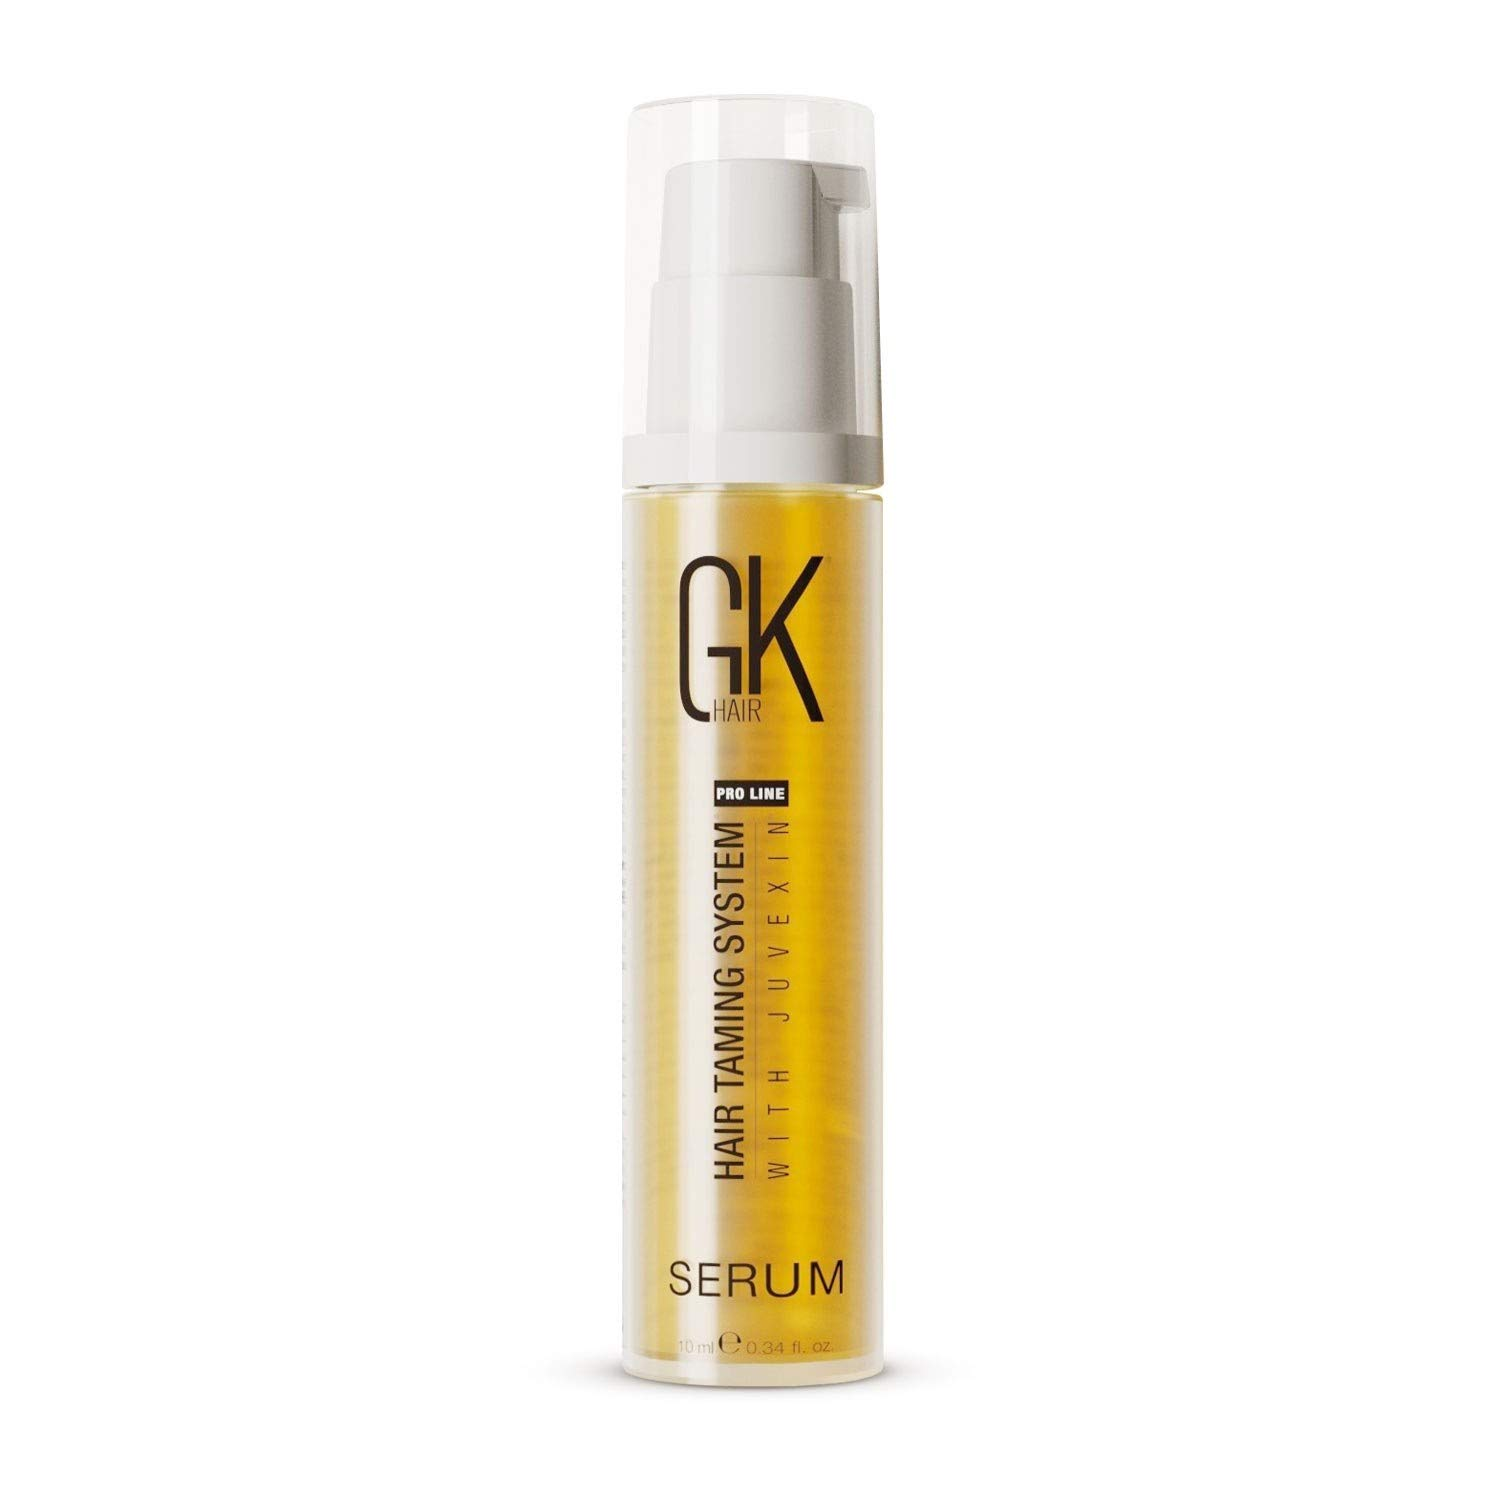 Global Keratin GK Hair Smoothing Serum (Pack of 1/0.34 fl oz) - 100% Pure Organic Argan Oil | Hydrating Strength Shine Dry Damaged Repair Anti-Frizz Moistures Nourishment